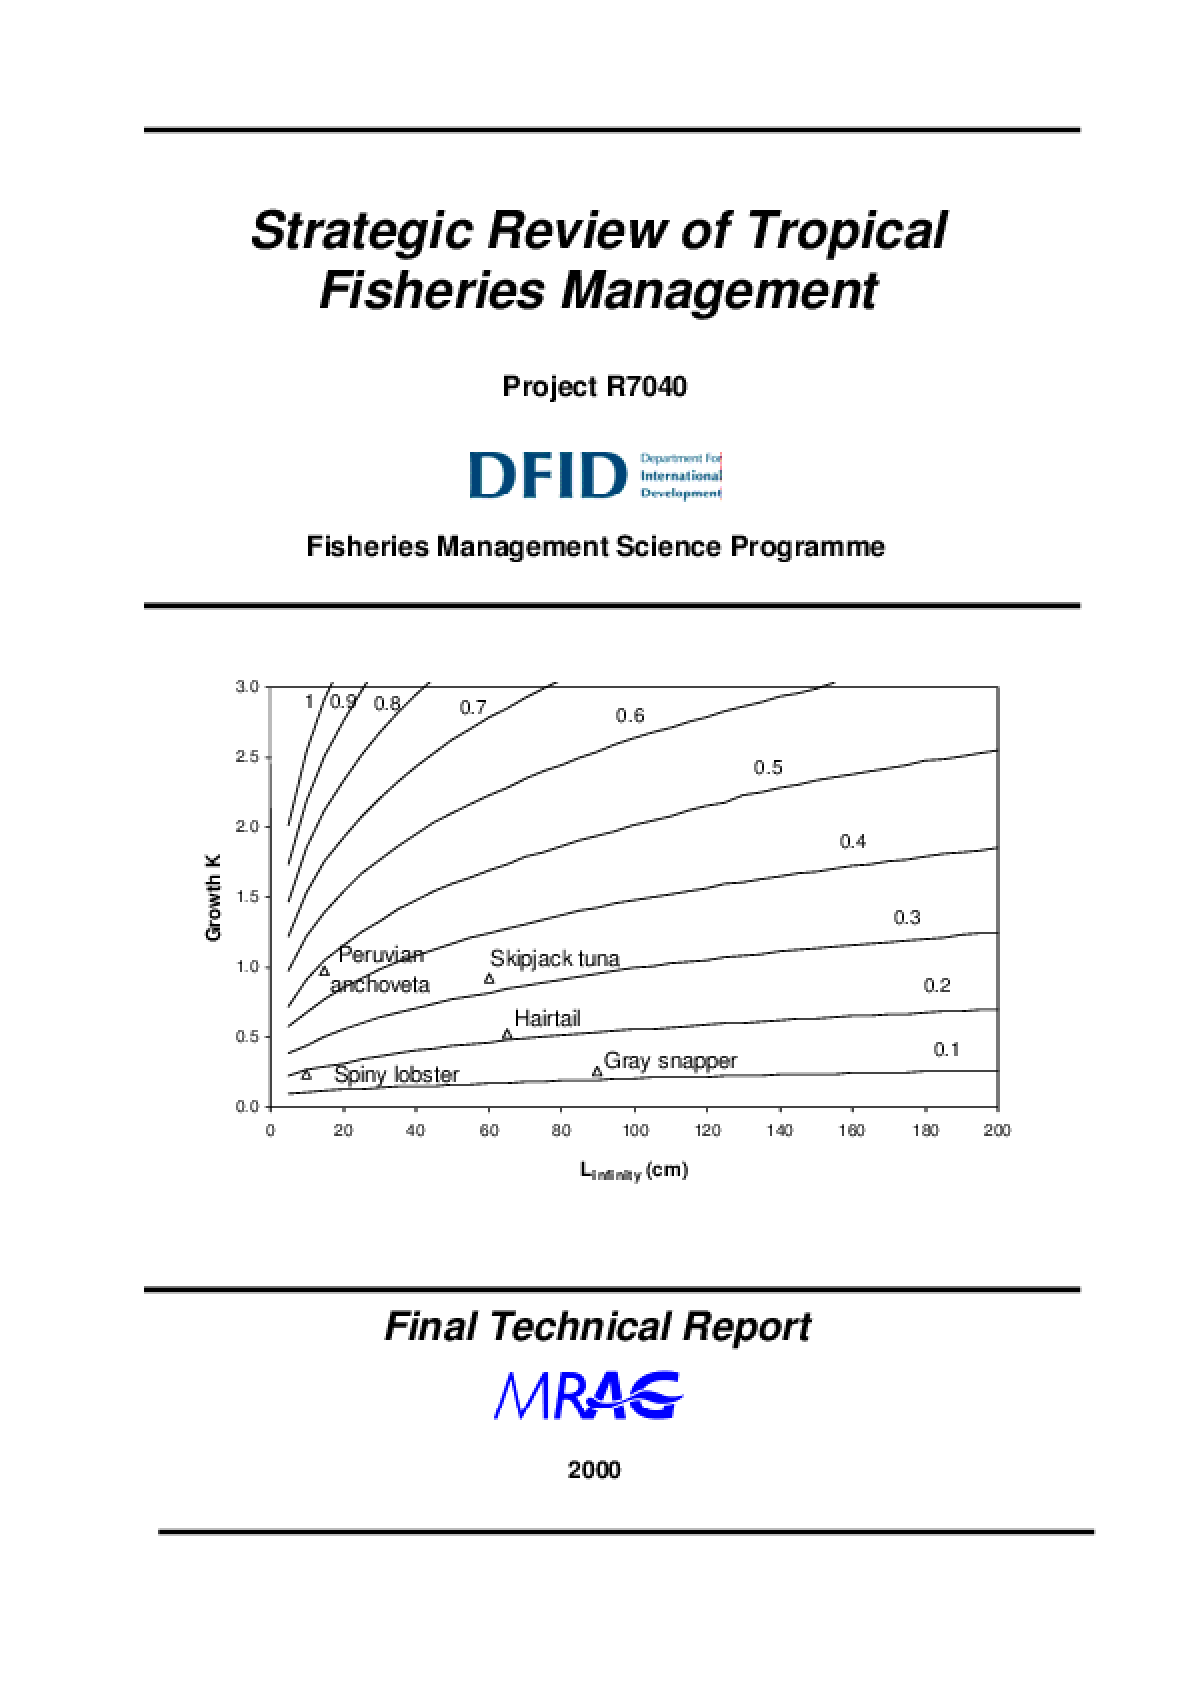 Strategic Review of Tropical Fisheries Management